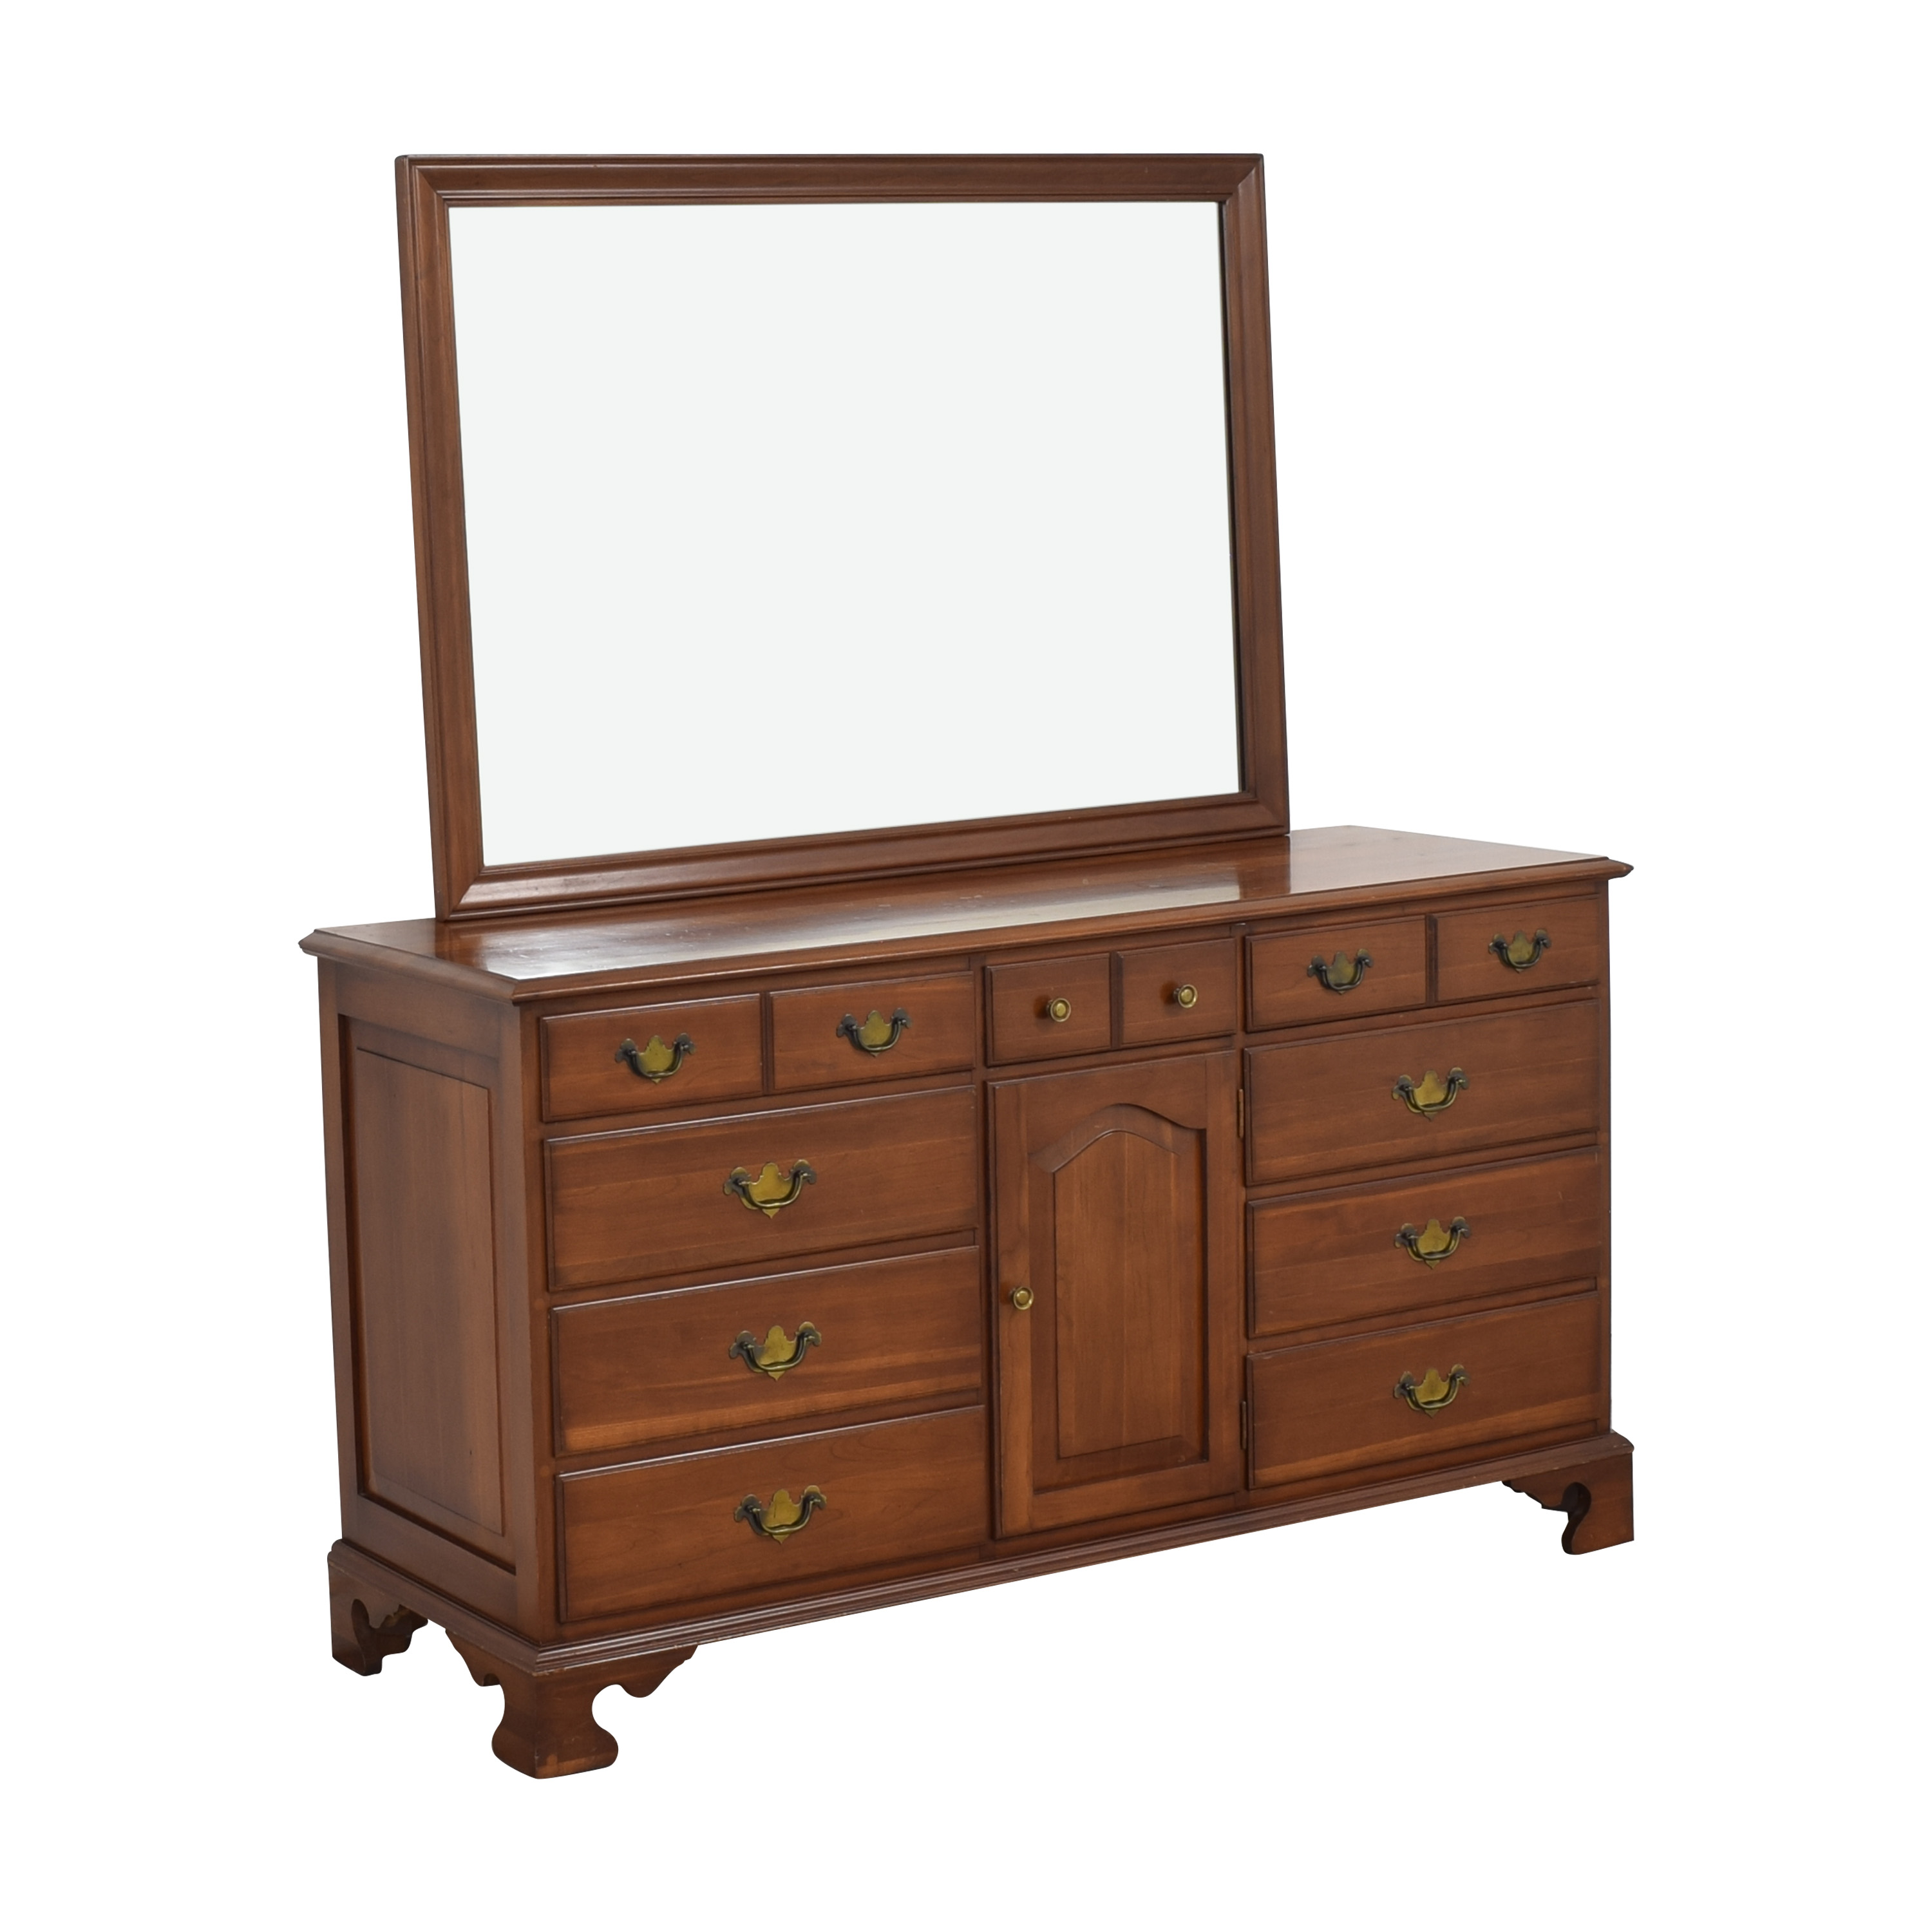 Permacraft Permacraft Twelve Drawer Concord Dresser with Mirror ma